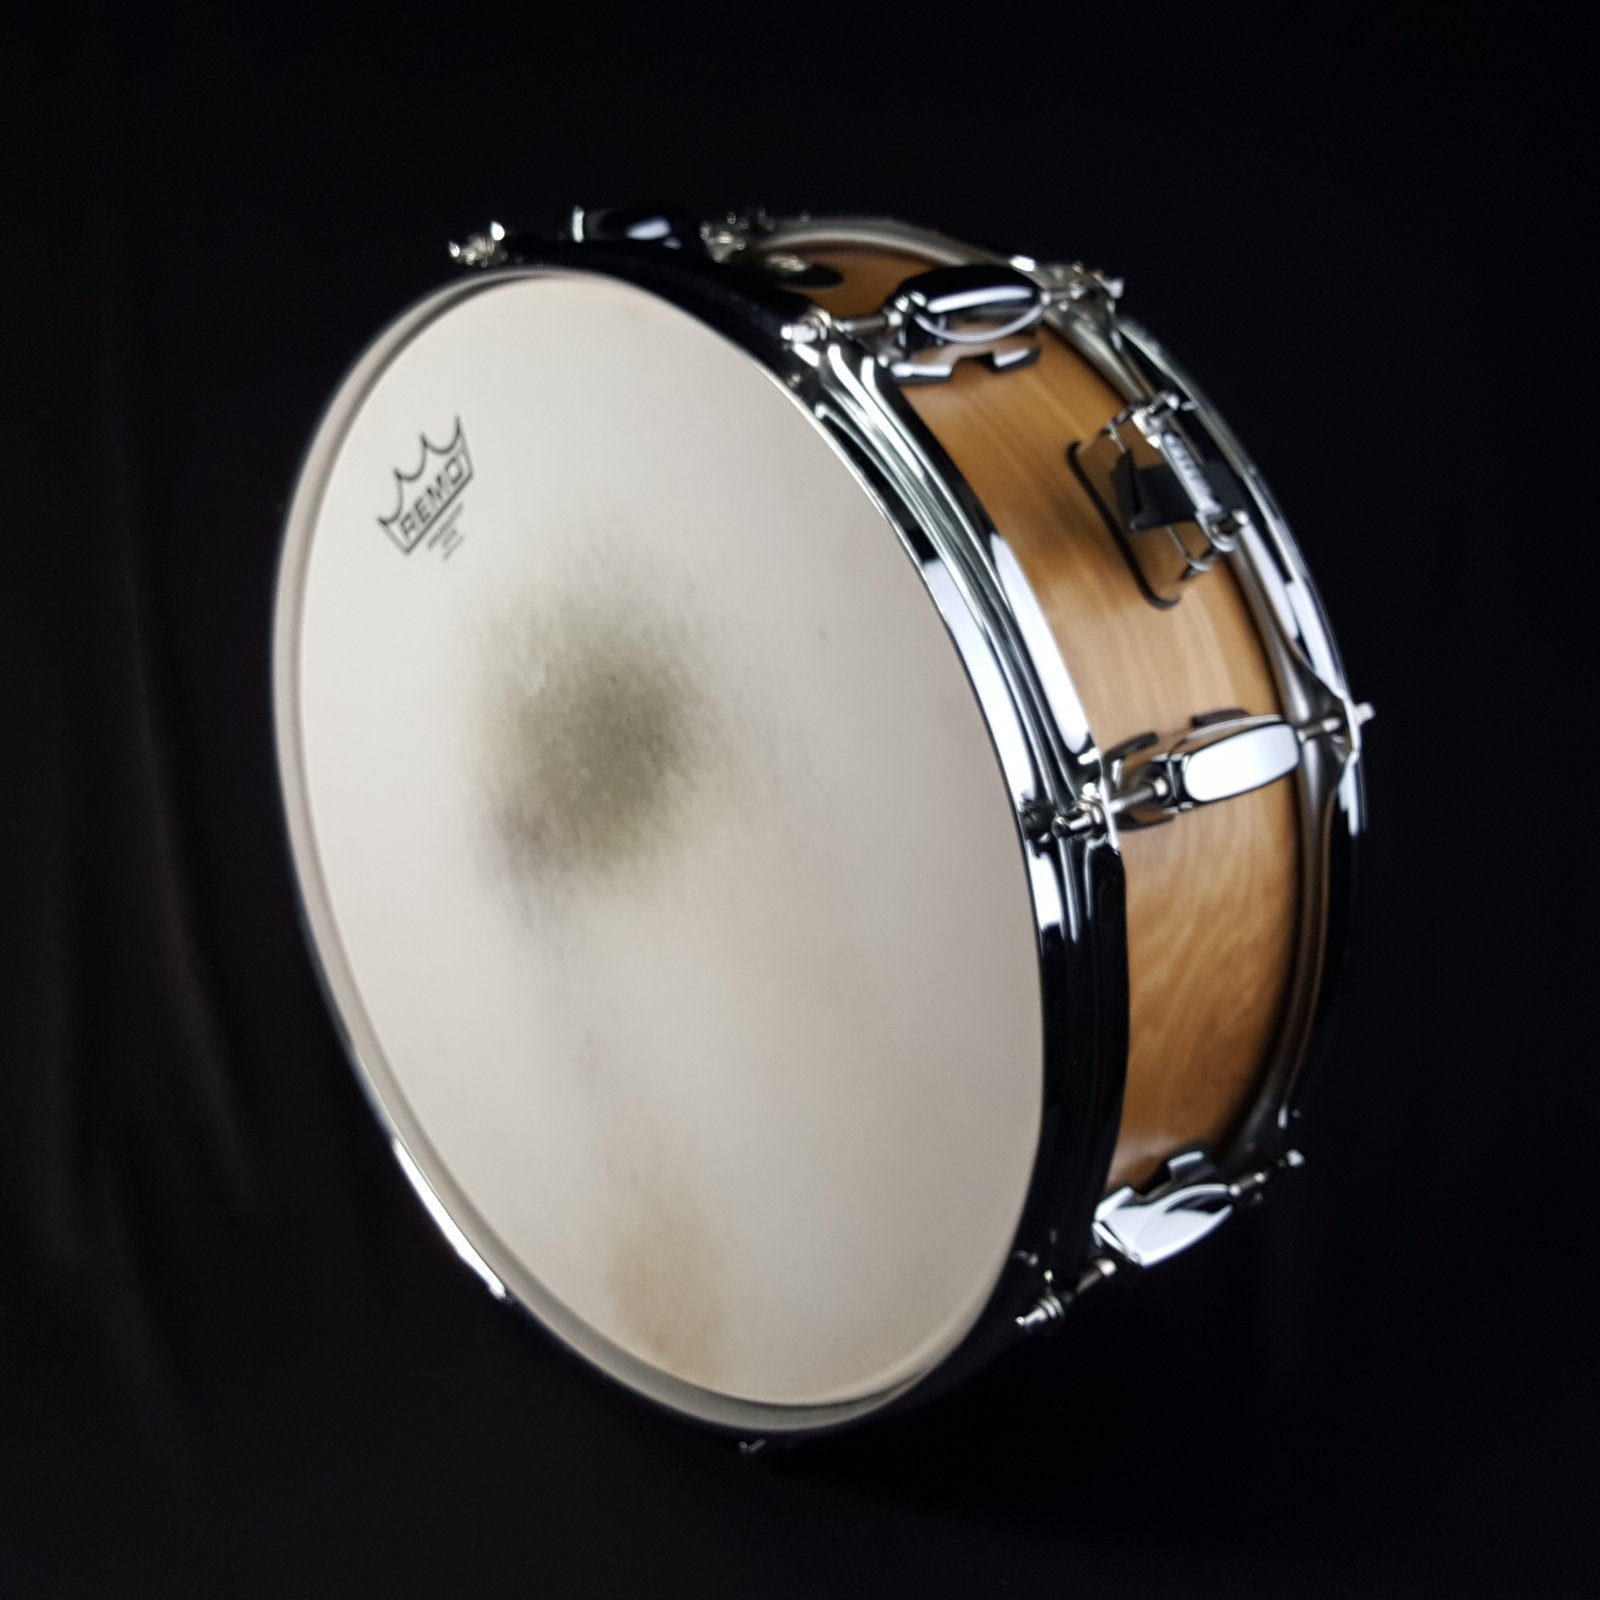 Tama Silverstar Limited Edition Birch Snare Drum 5 x 14 2013 Tamo Ash